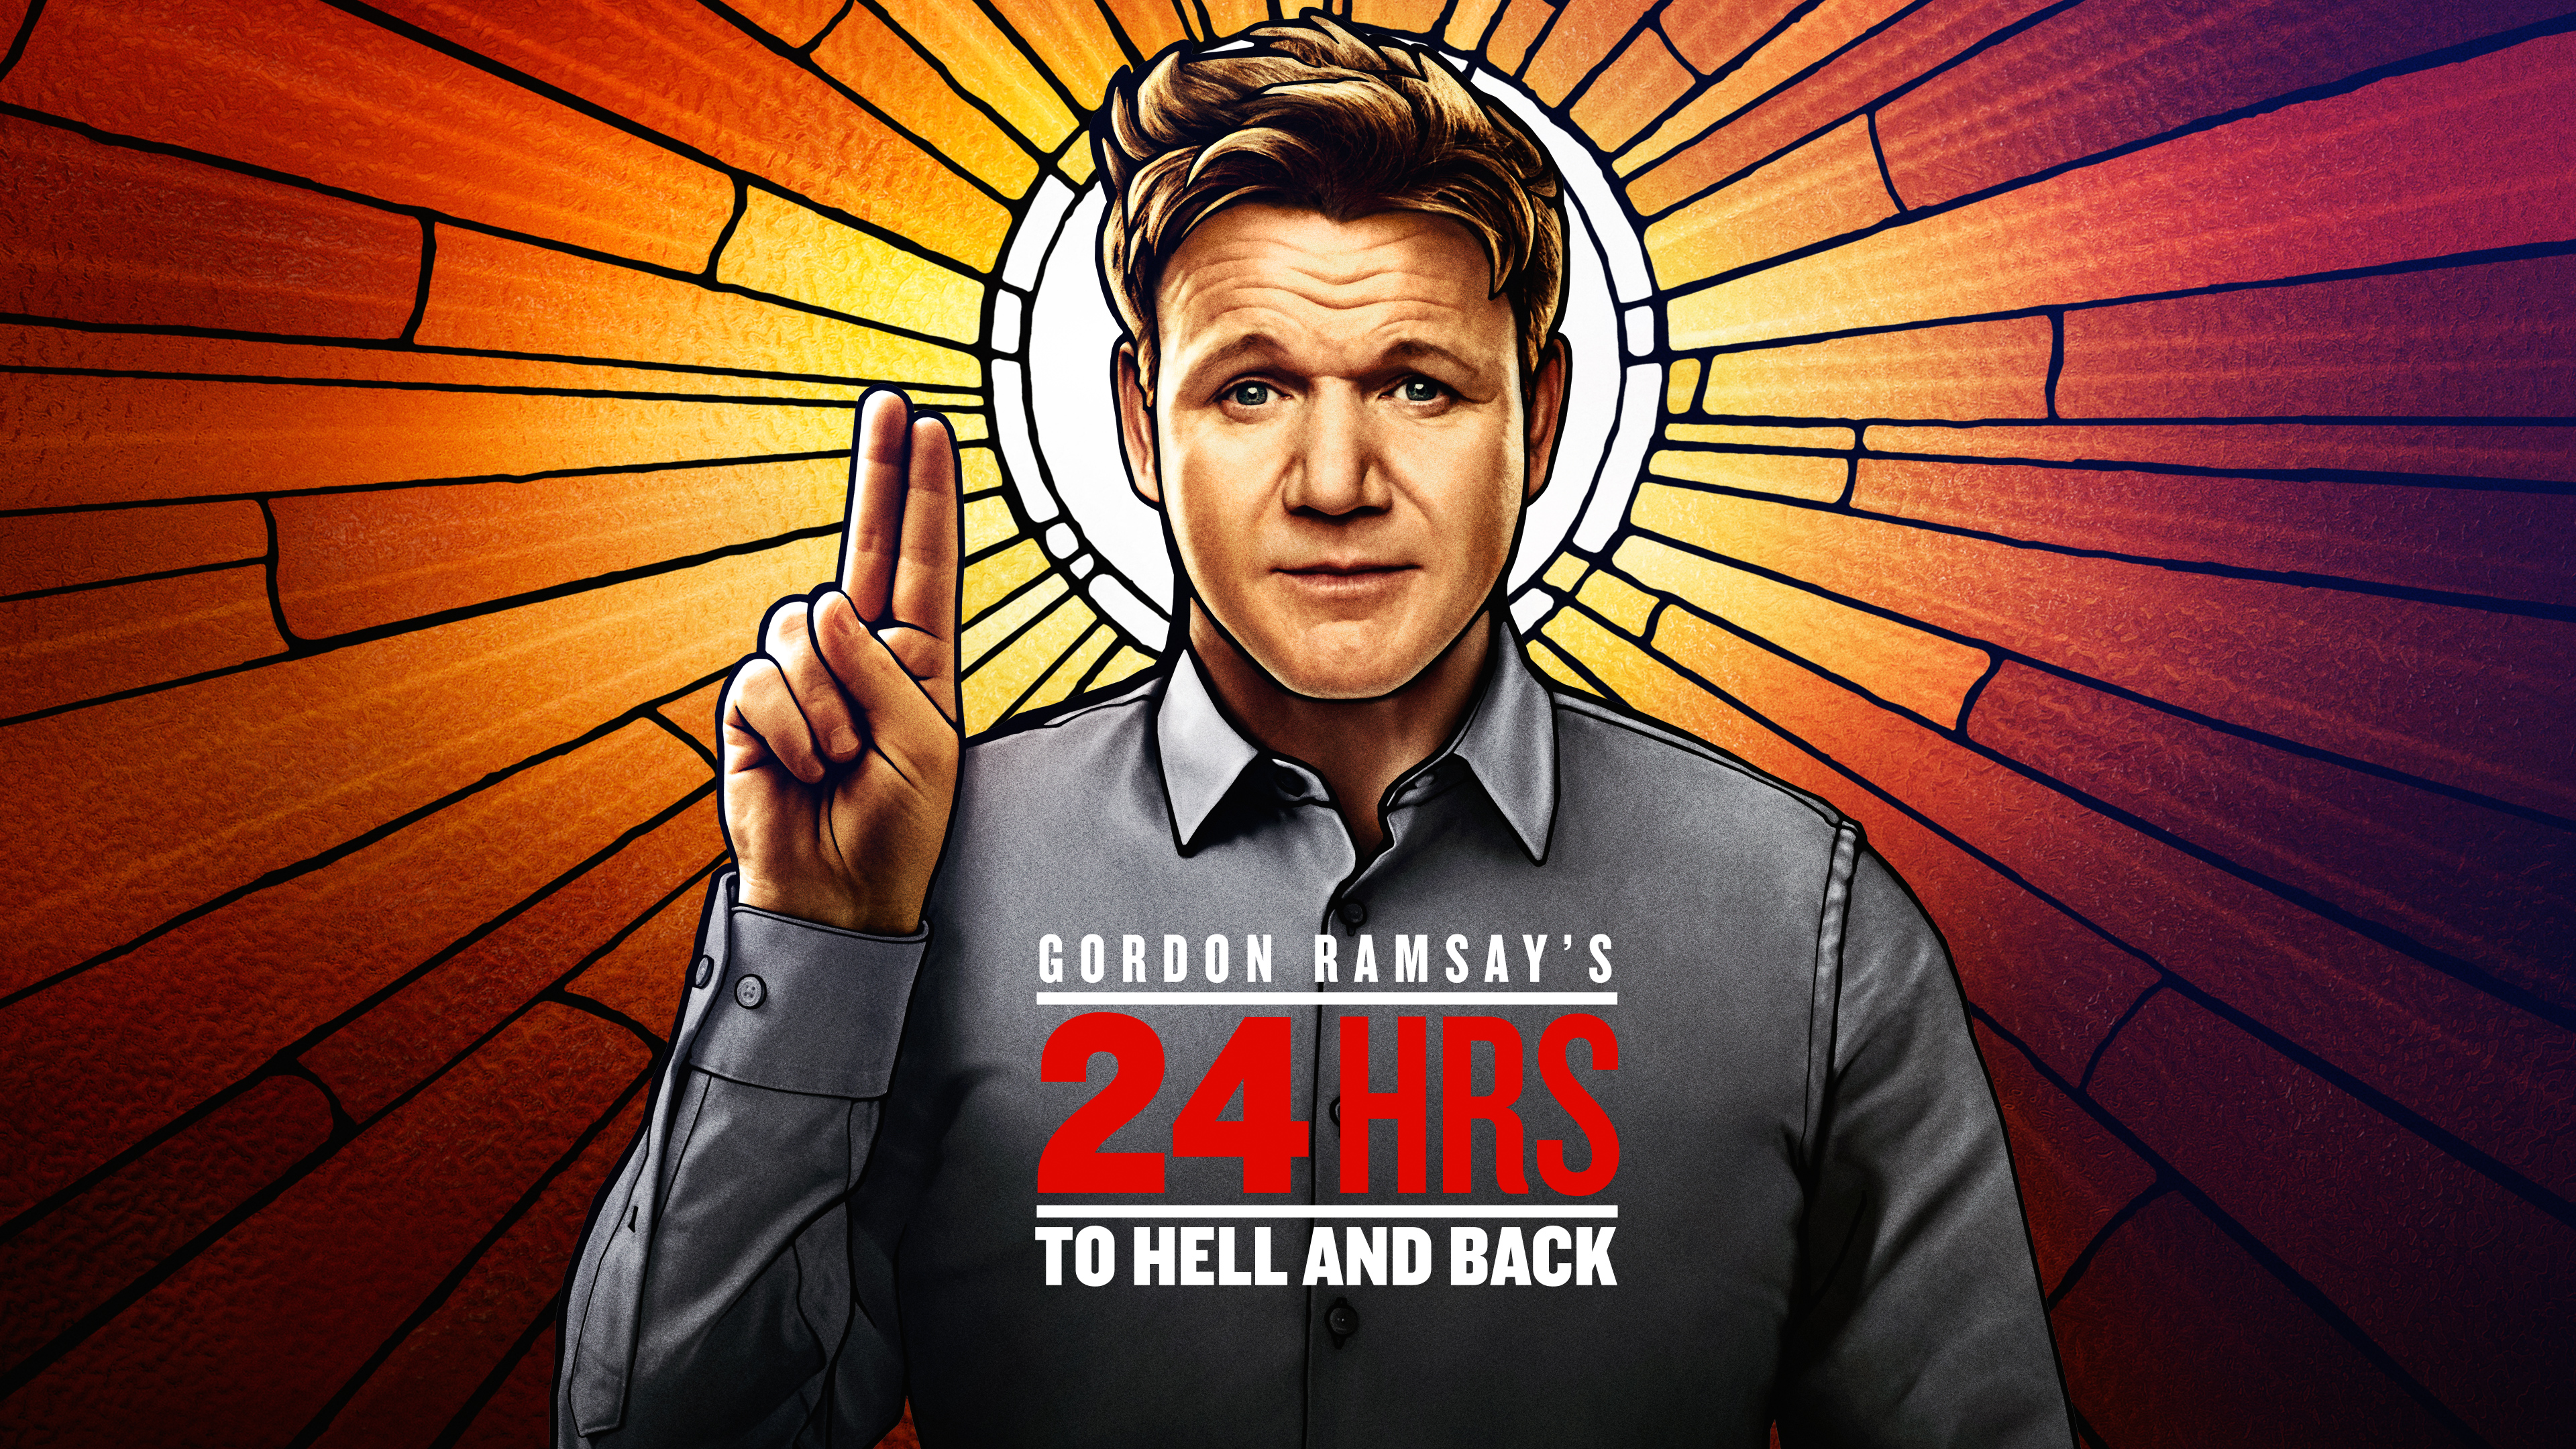 Gordon Ramsay 24 Hours To Hell And Back Hd Tv Shows 4k